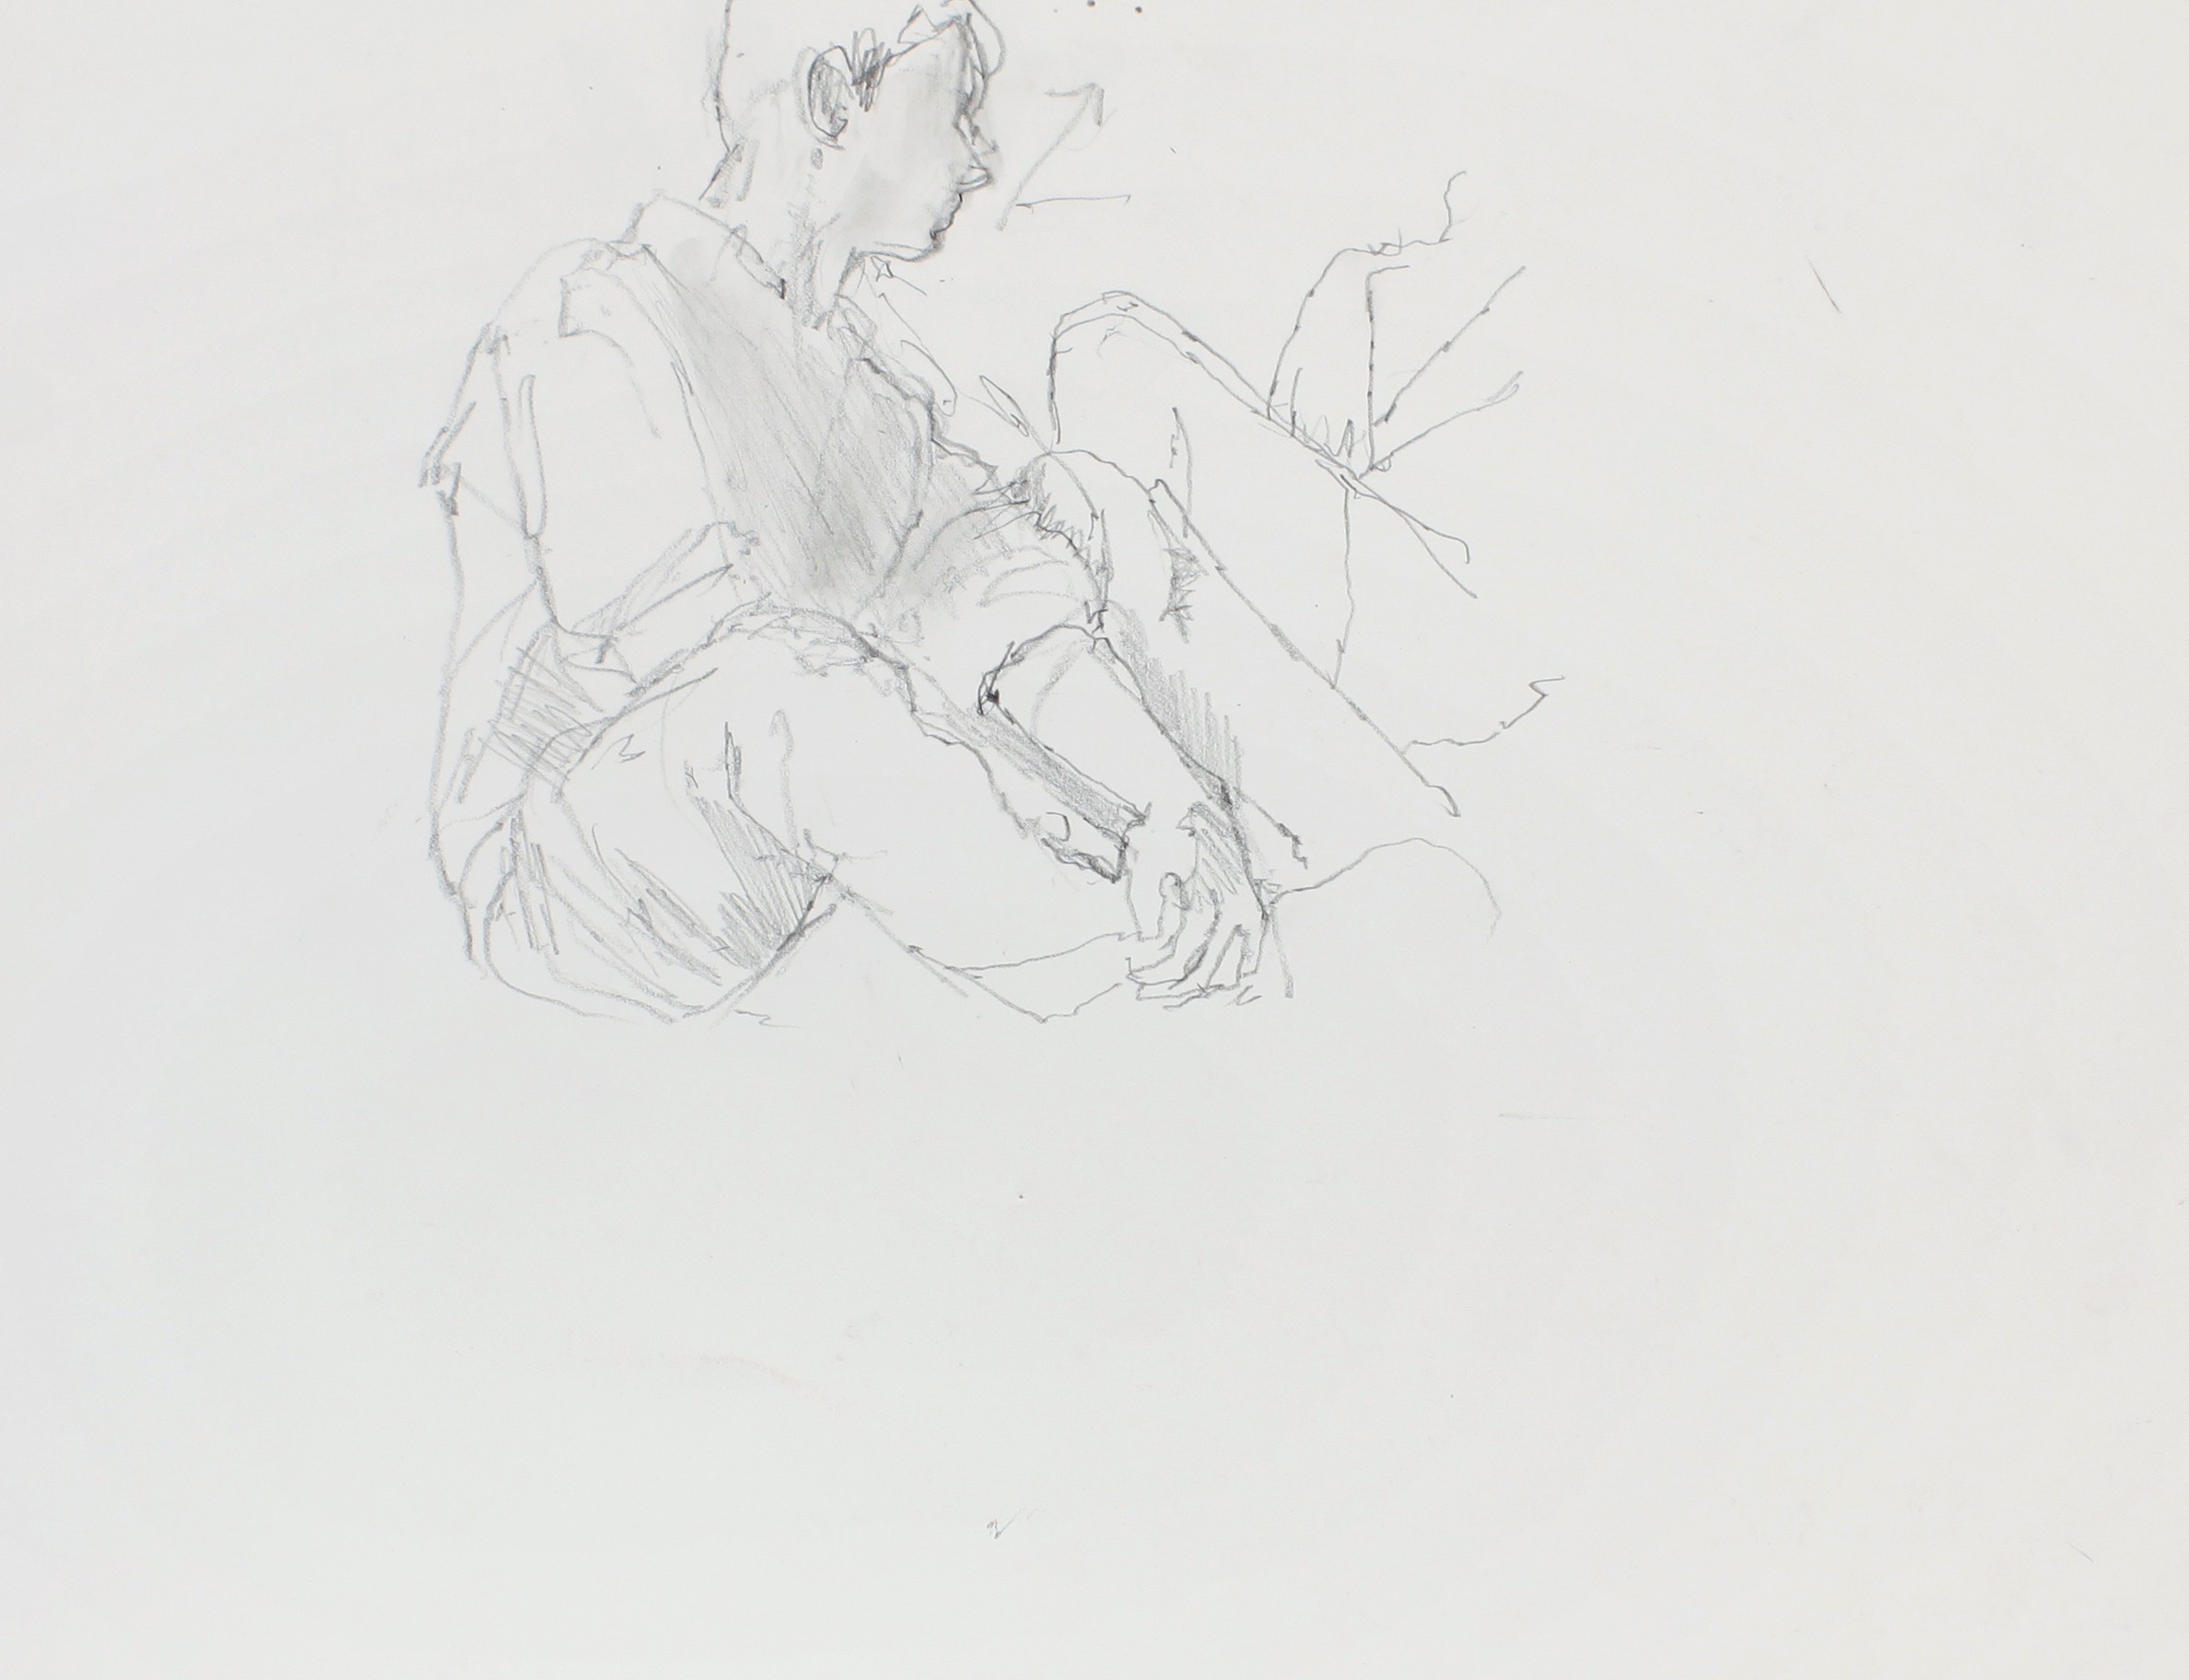 1998_Study_for_Olivier_(Couple)_pencil_on_paper_11x15in_WPF608.jpg